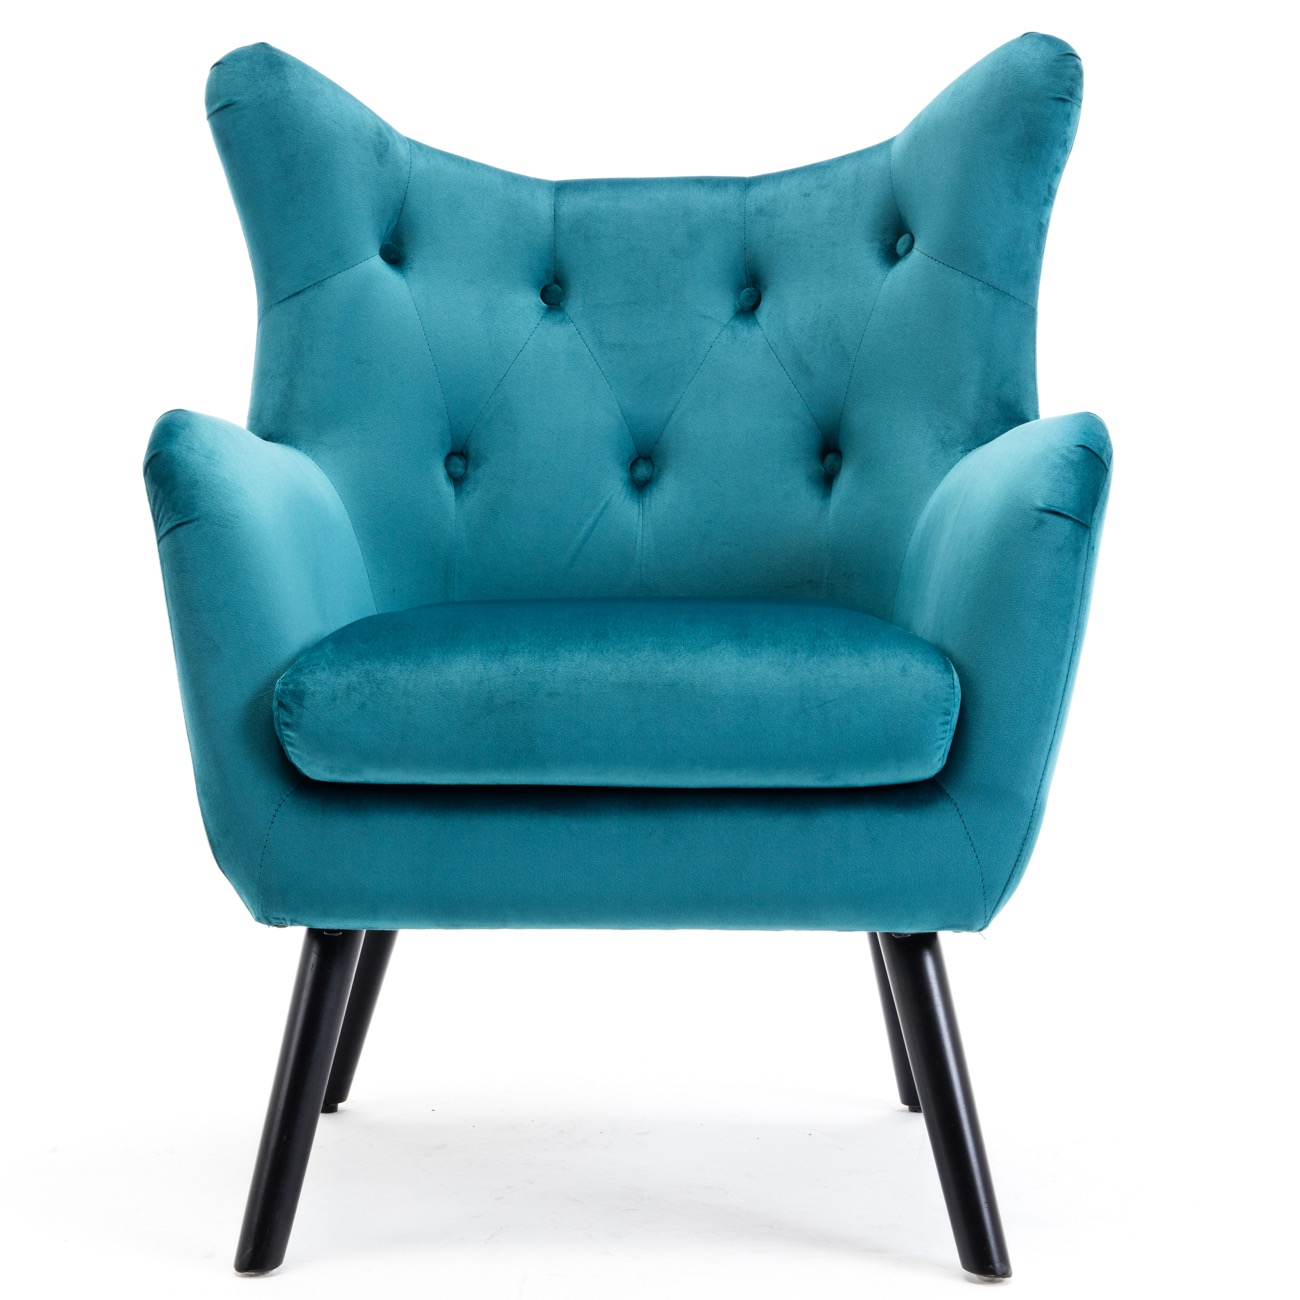 Details About Accent Chair Seat Dining Wing Back Tufted Living Room Club  Arm Furniture, Teal